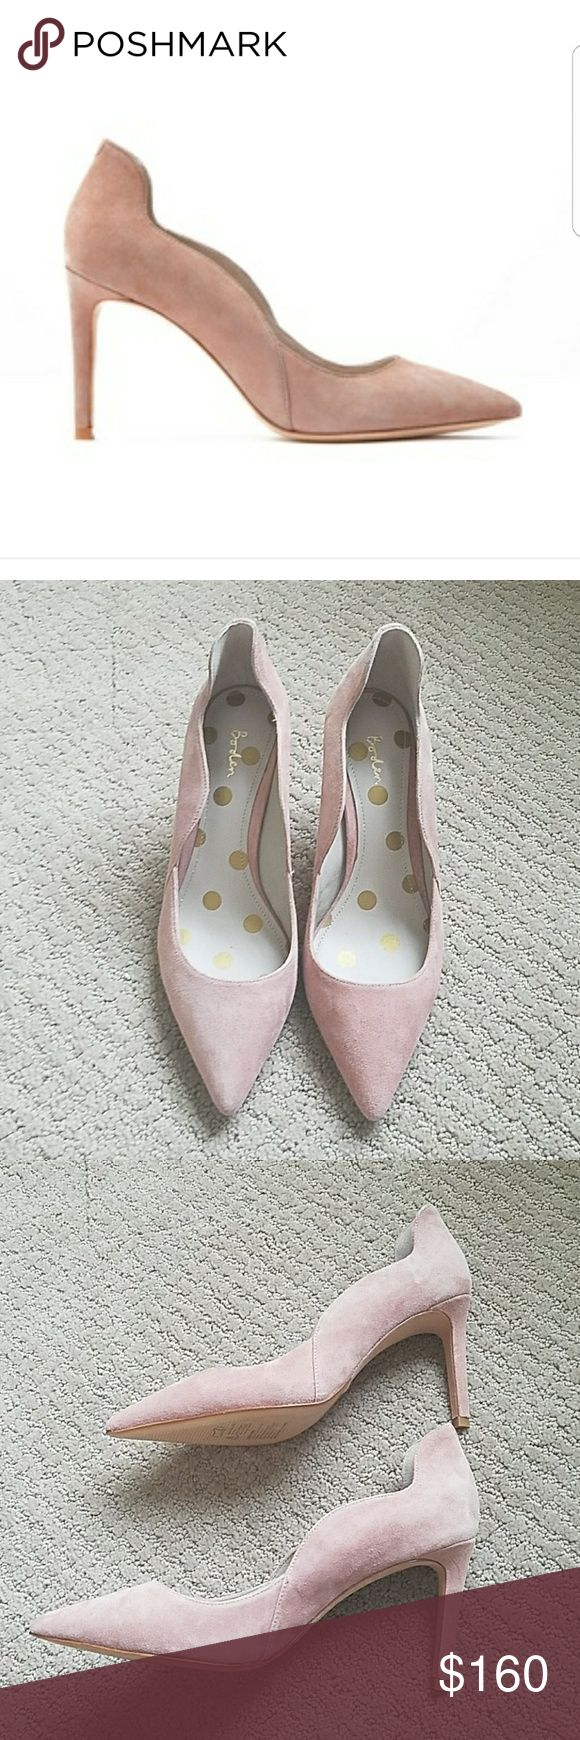 Boden Pink Suede Wave heel Never worn. New without box Boden Shoes Heels